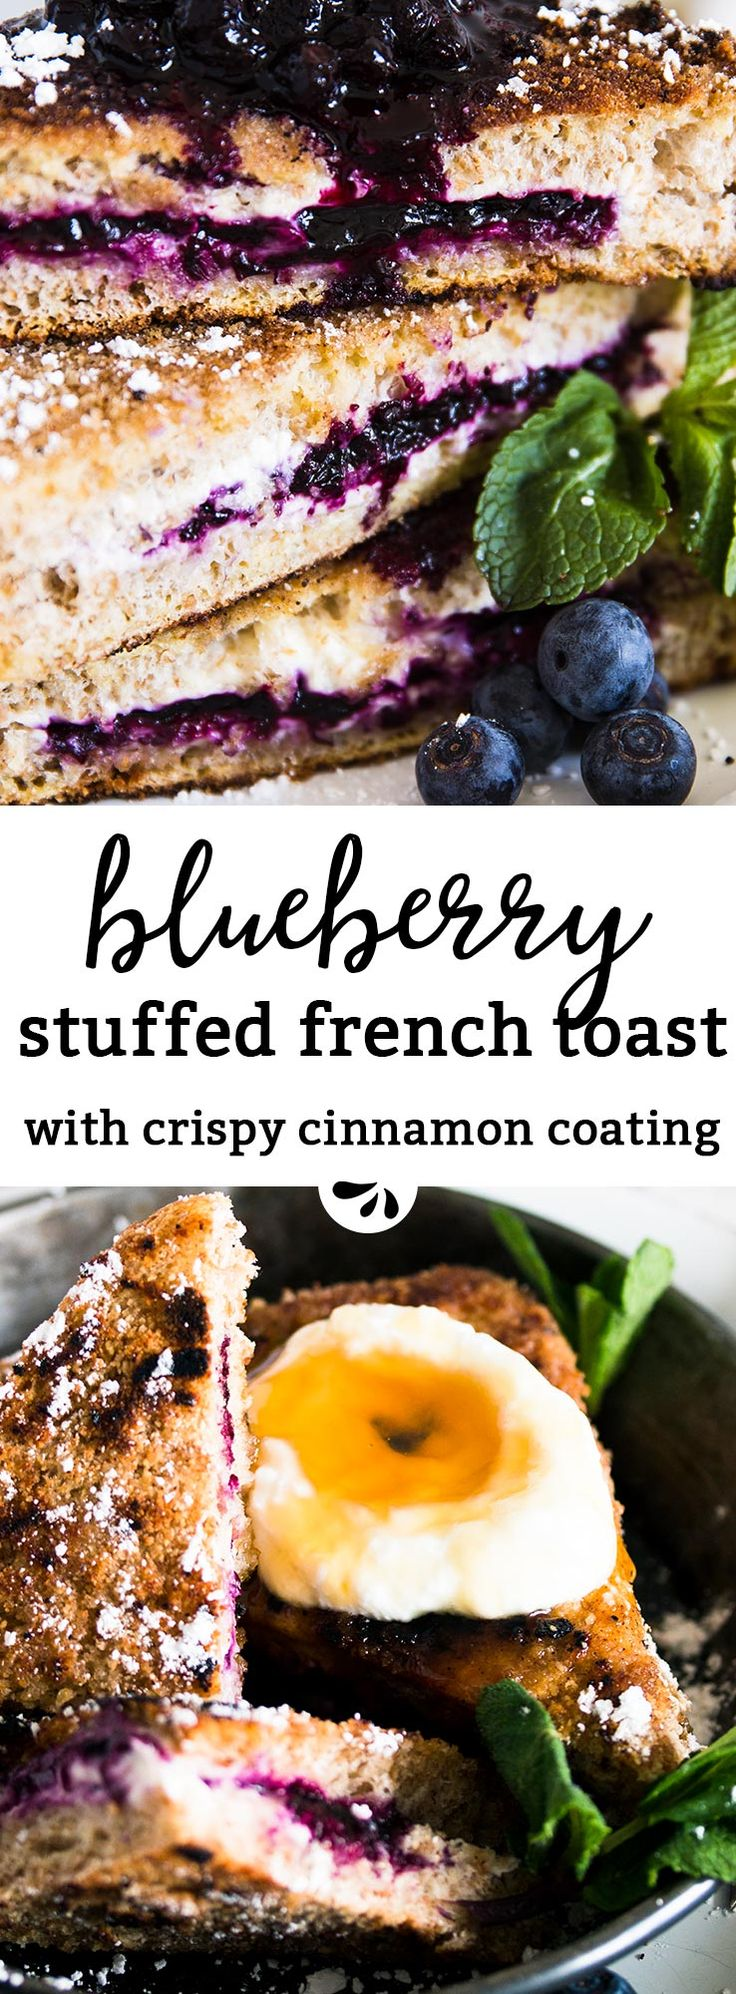 This Healthier Blueberry Cheesecake Stuffed French Toast is the perfect addition to your Easter or Mother's Day brunch. Made healthier with whole grains and Greek yogurt, the whole family can indulge in a delicious good-for-you breakfast. Using all-natural blueberry preserves makes this recipe super easy. The crispy cinnamon sugar coating is an extra step you do not want to skimp out on - because it takes this french toast from simple to special! via @savorynothings